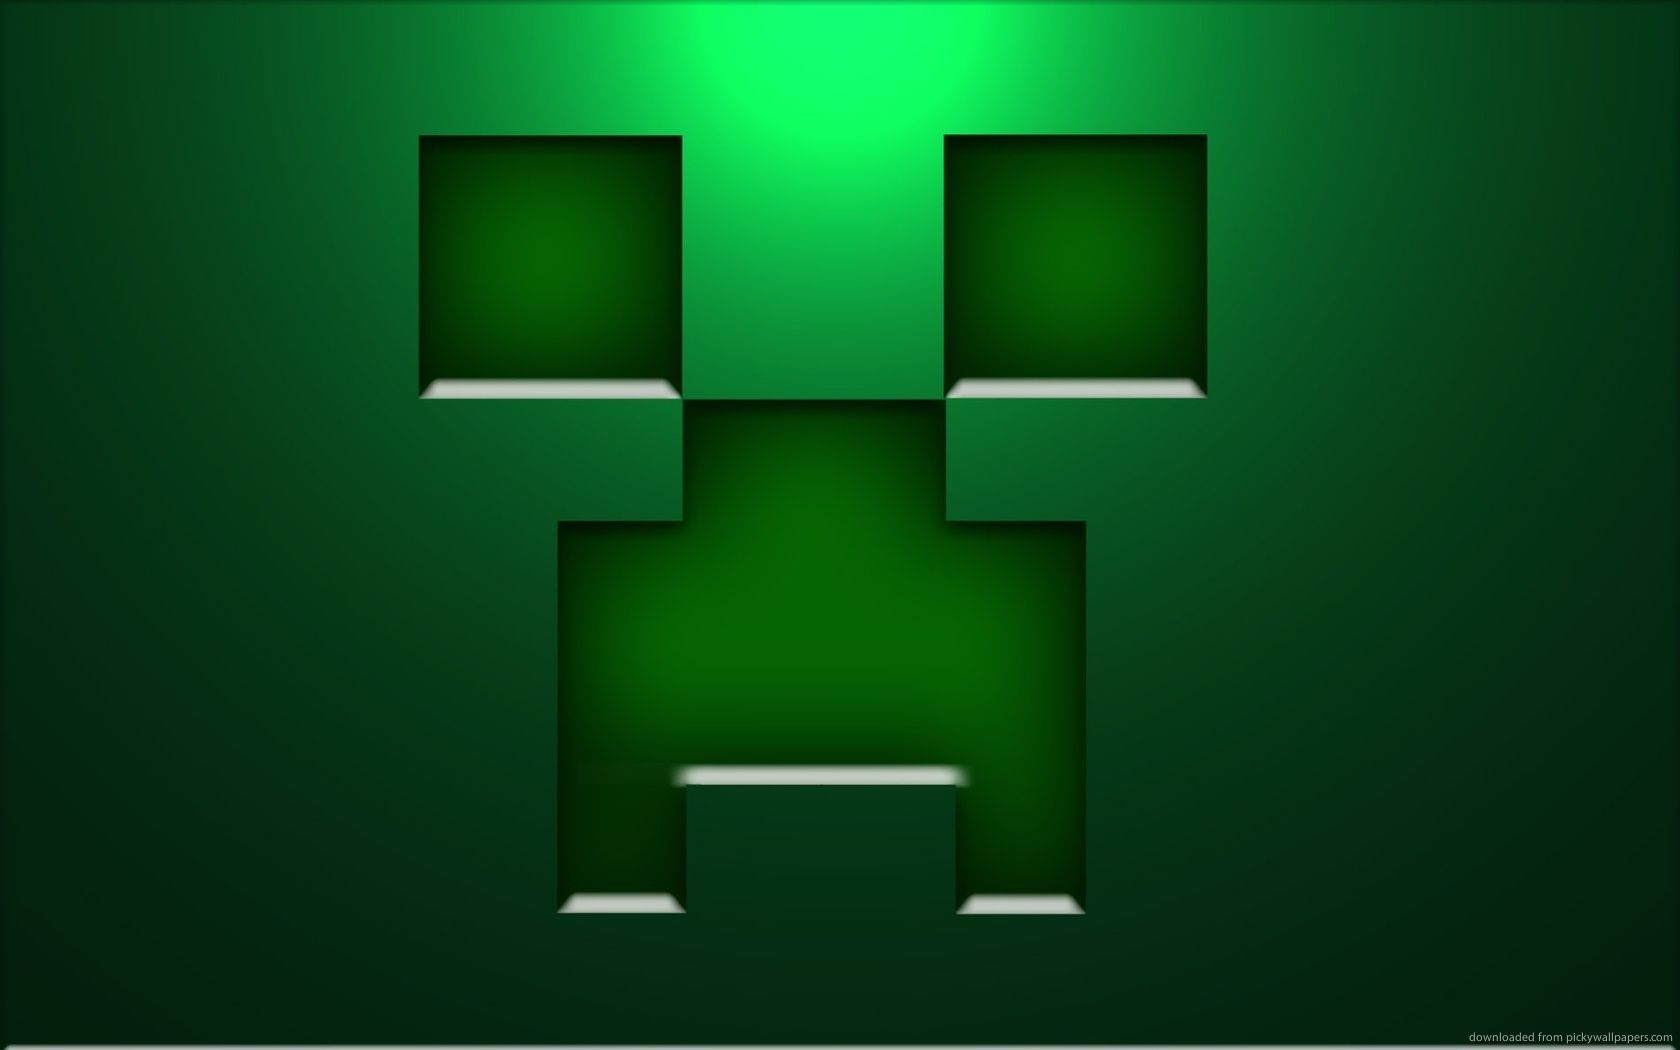 Newest Minecraft Photos And Pictures Minecraft Hqfx Wallpapers